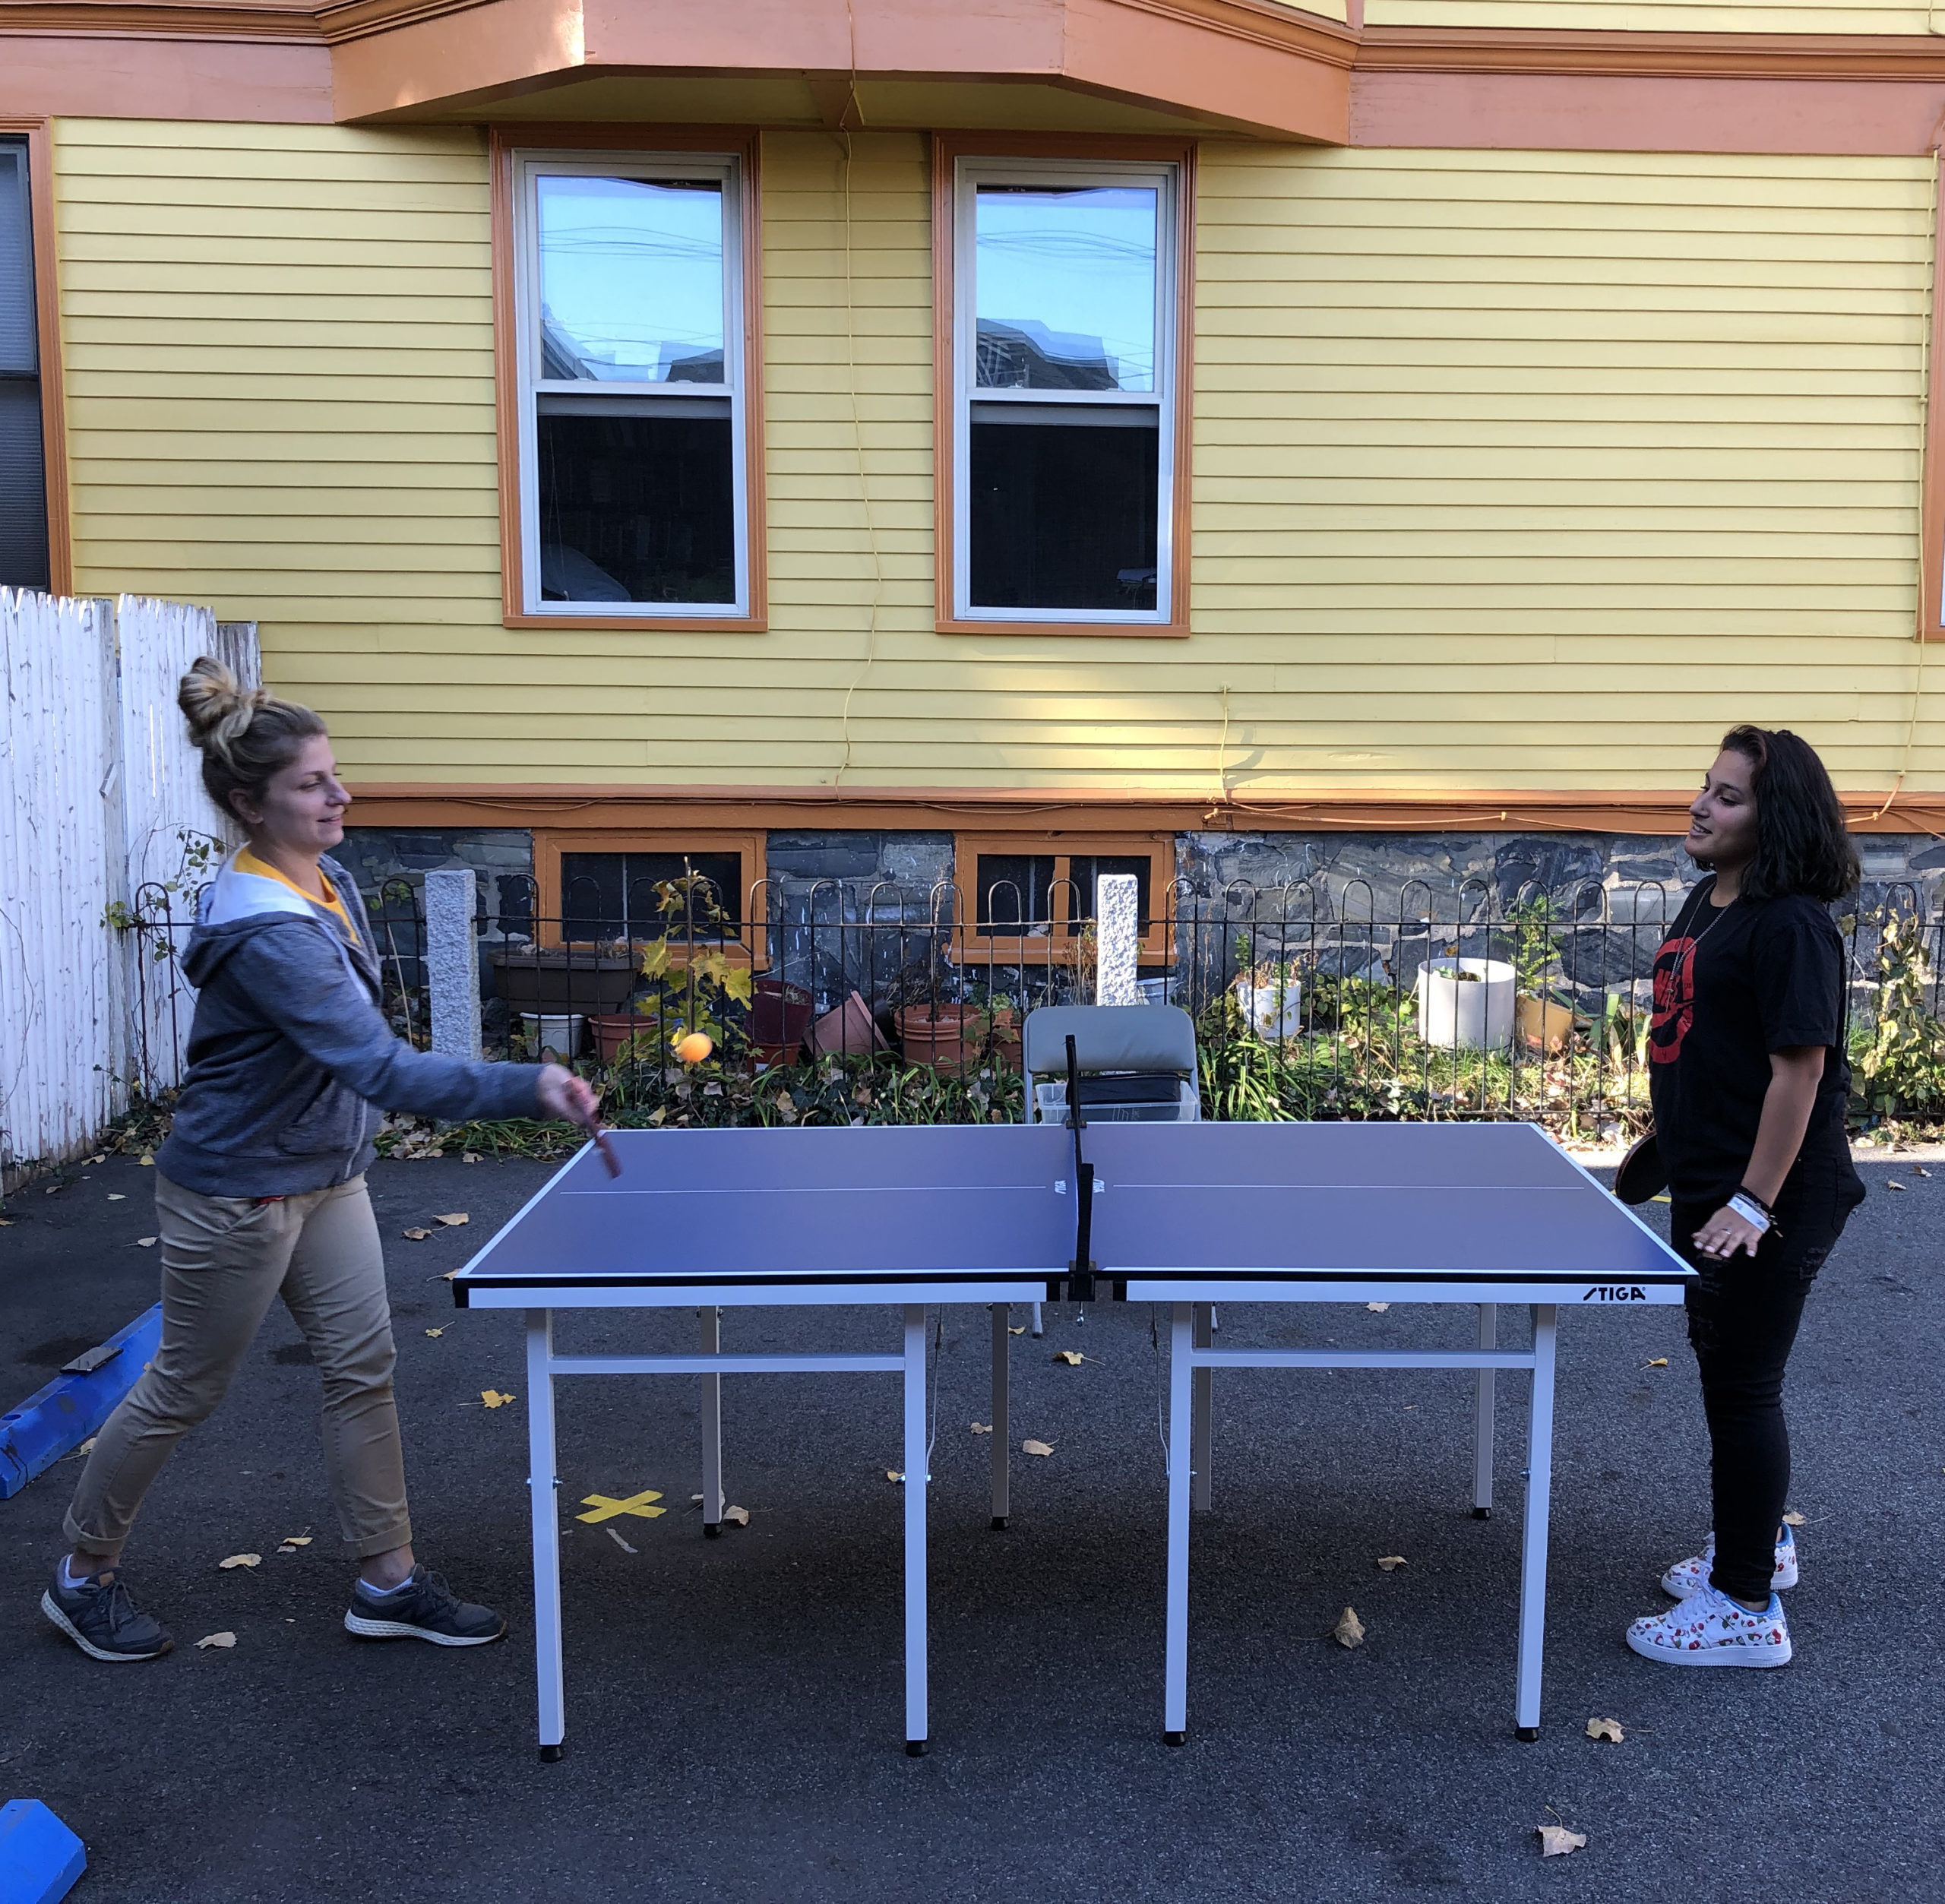 Playing pingpong